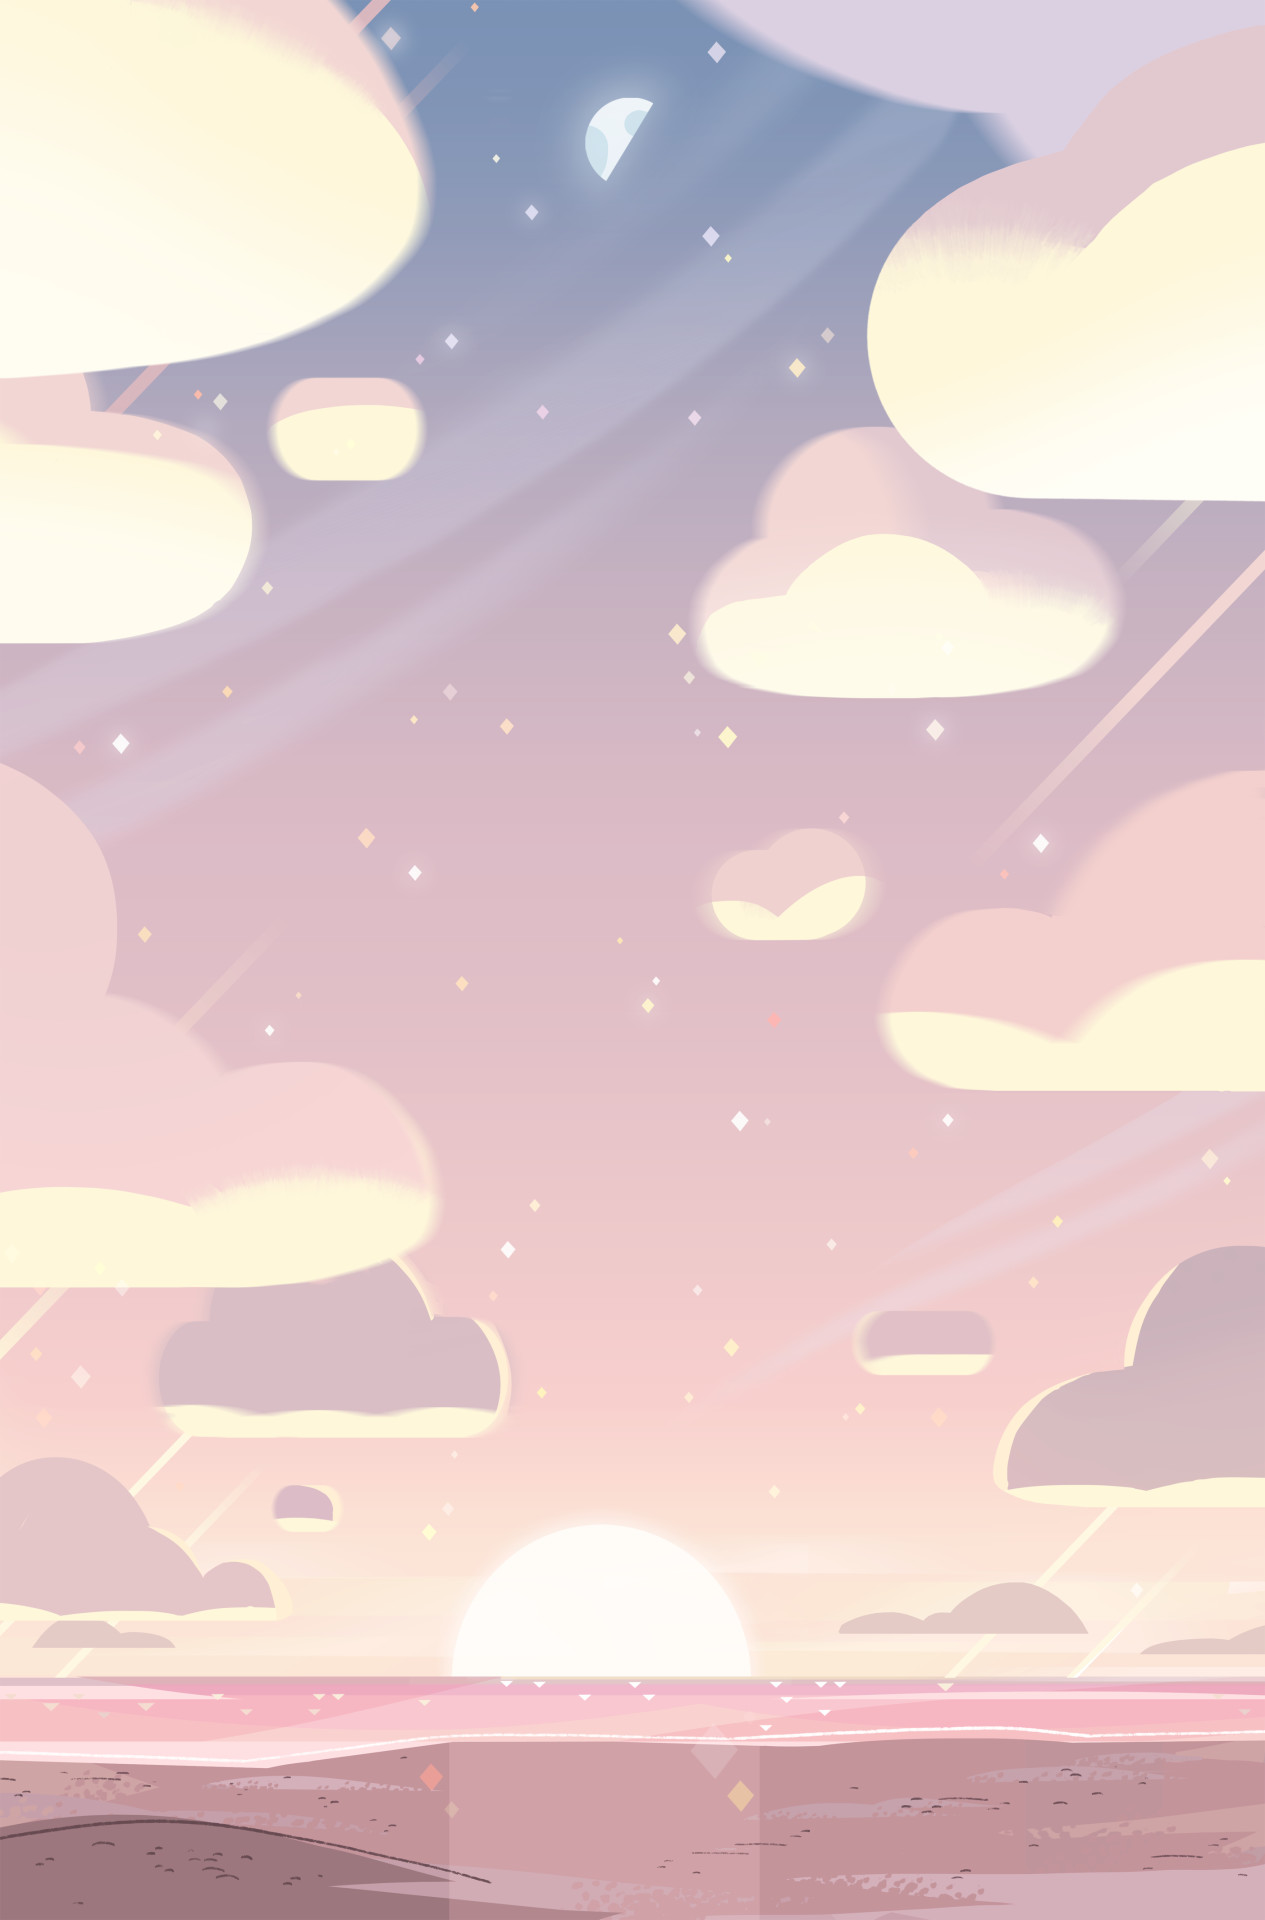 Steven Crewniverse Behind-The-Scenes Universe: A selection of Backgrounds  from the Steven